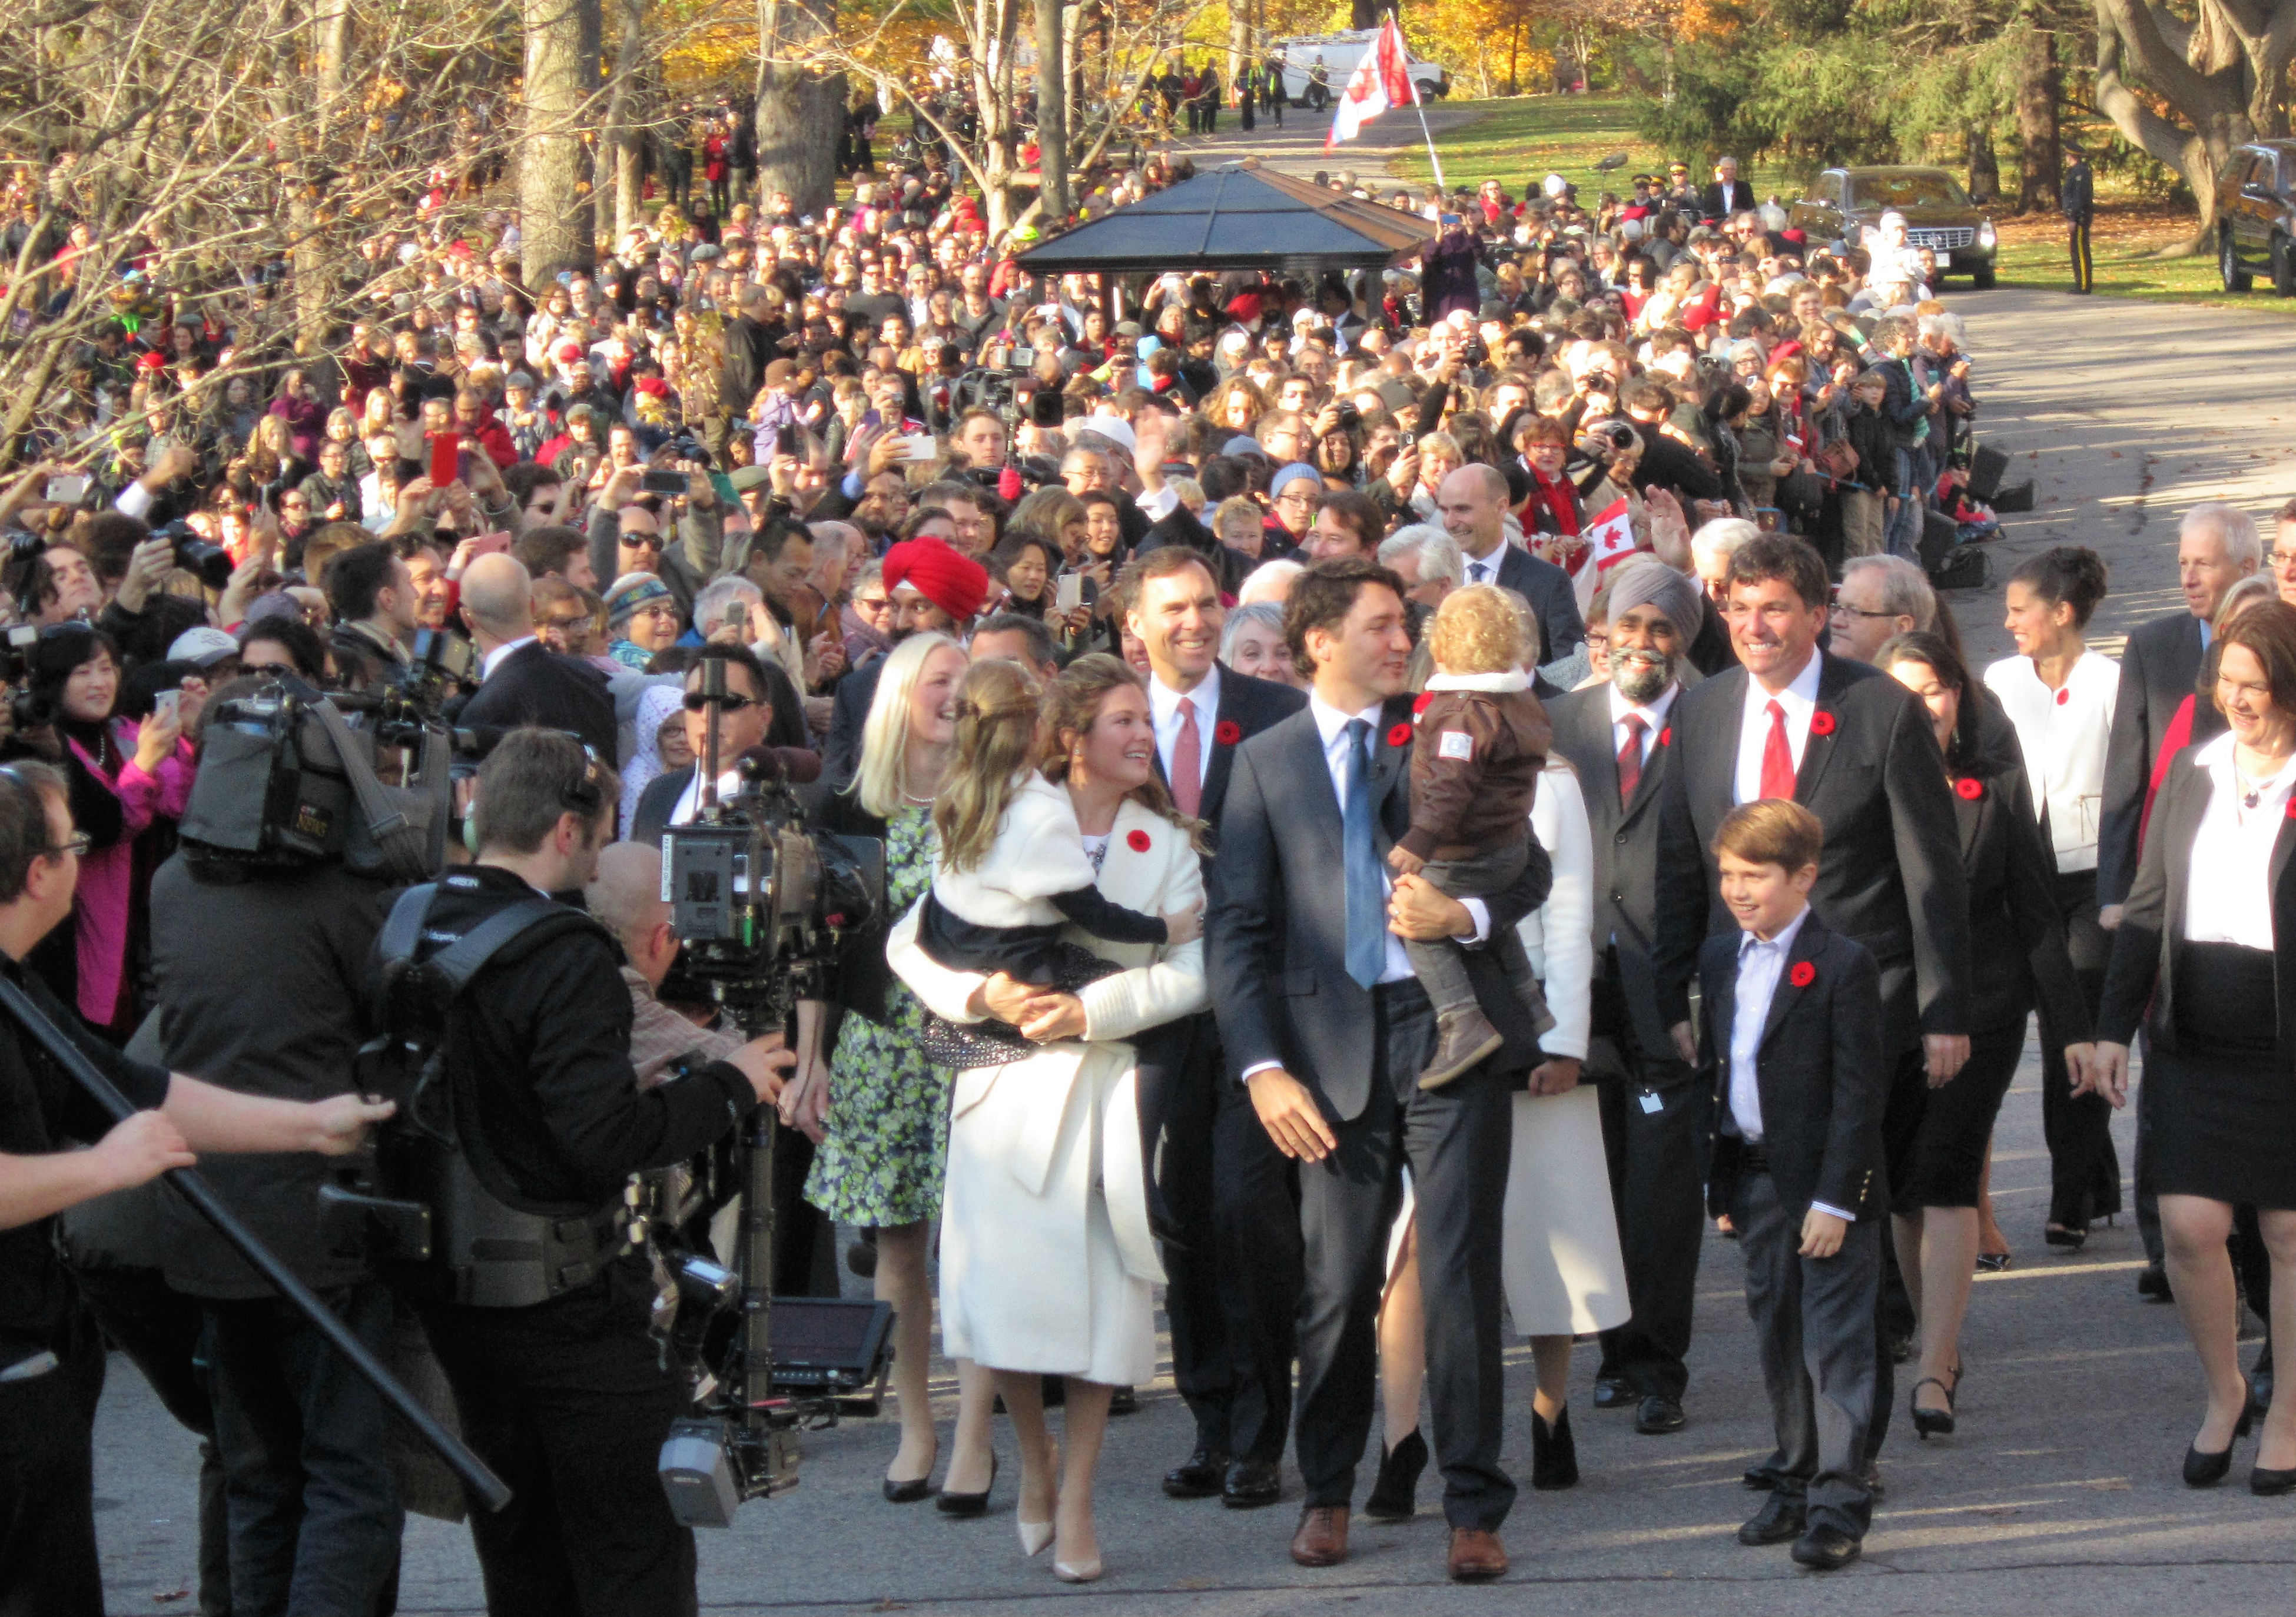 Trudeau sworn in as 23rd prime minister of Canada, new cabinet ...